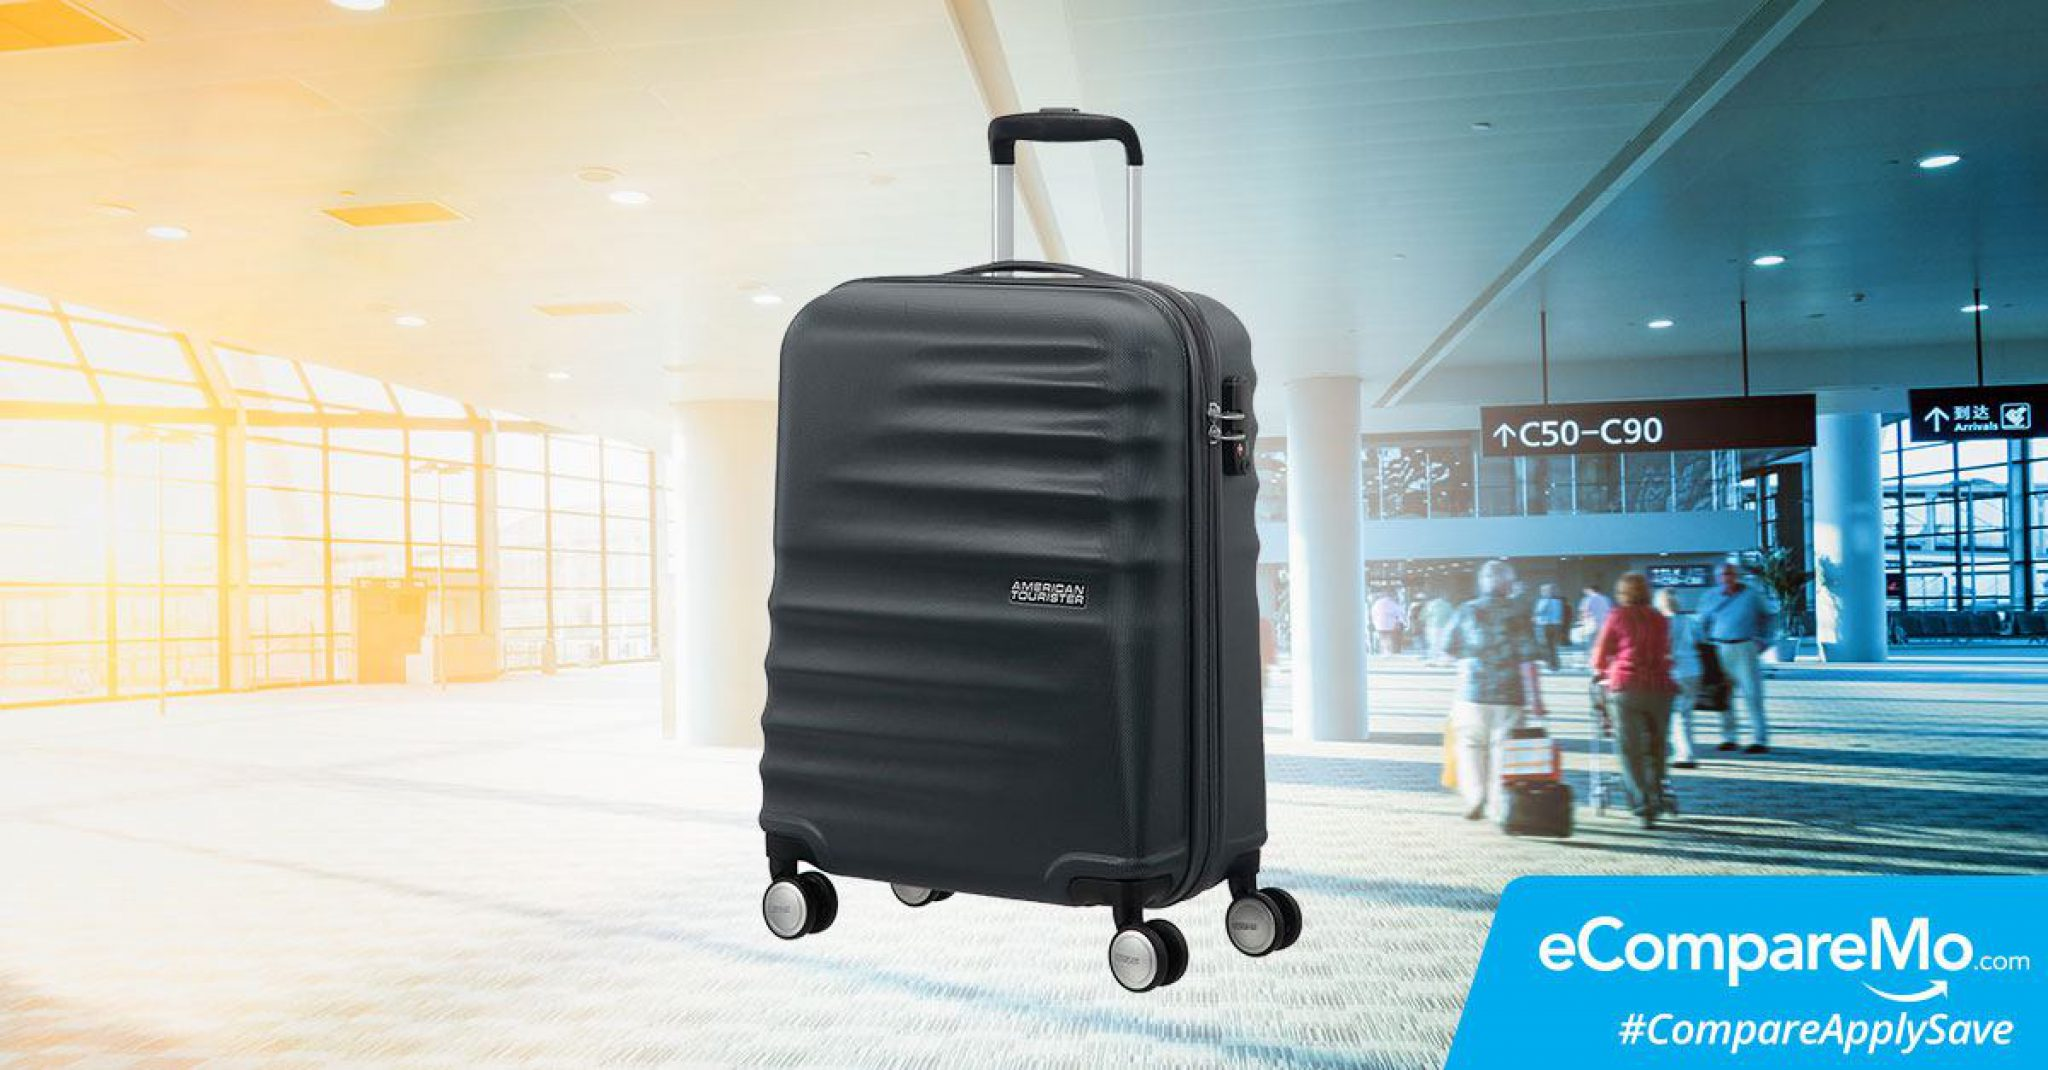 Get A Free American Tourister Spinner Luggage When You Apply